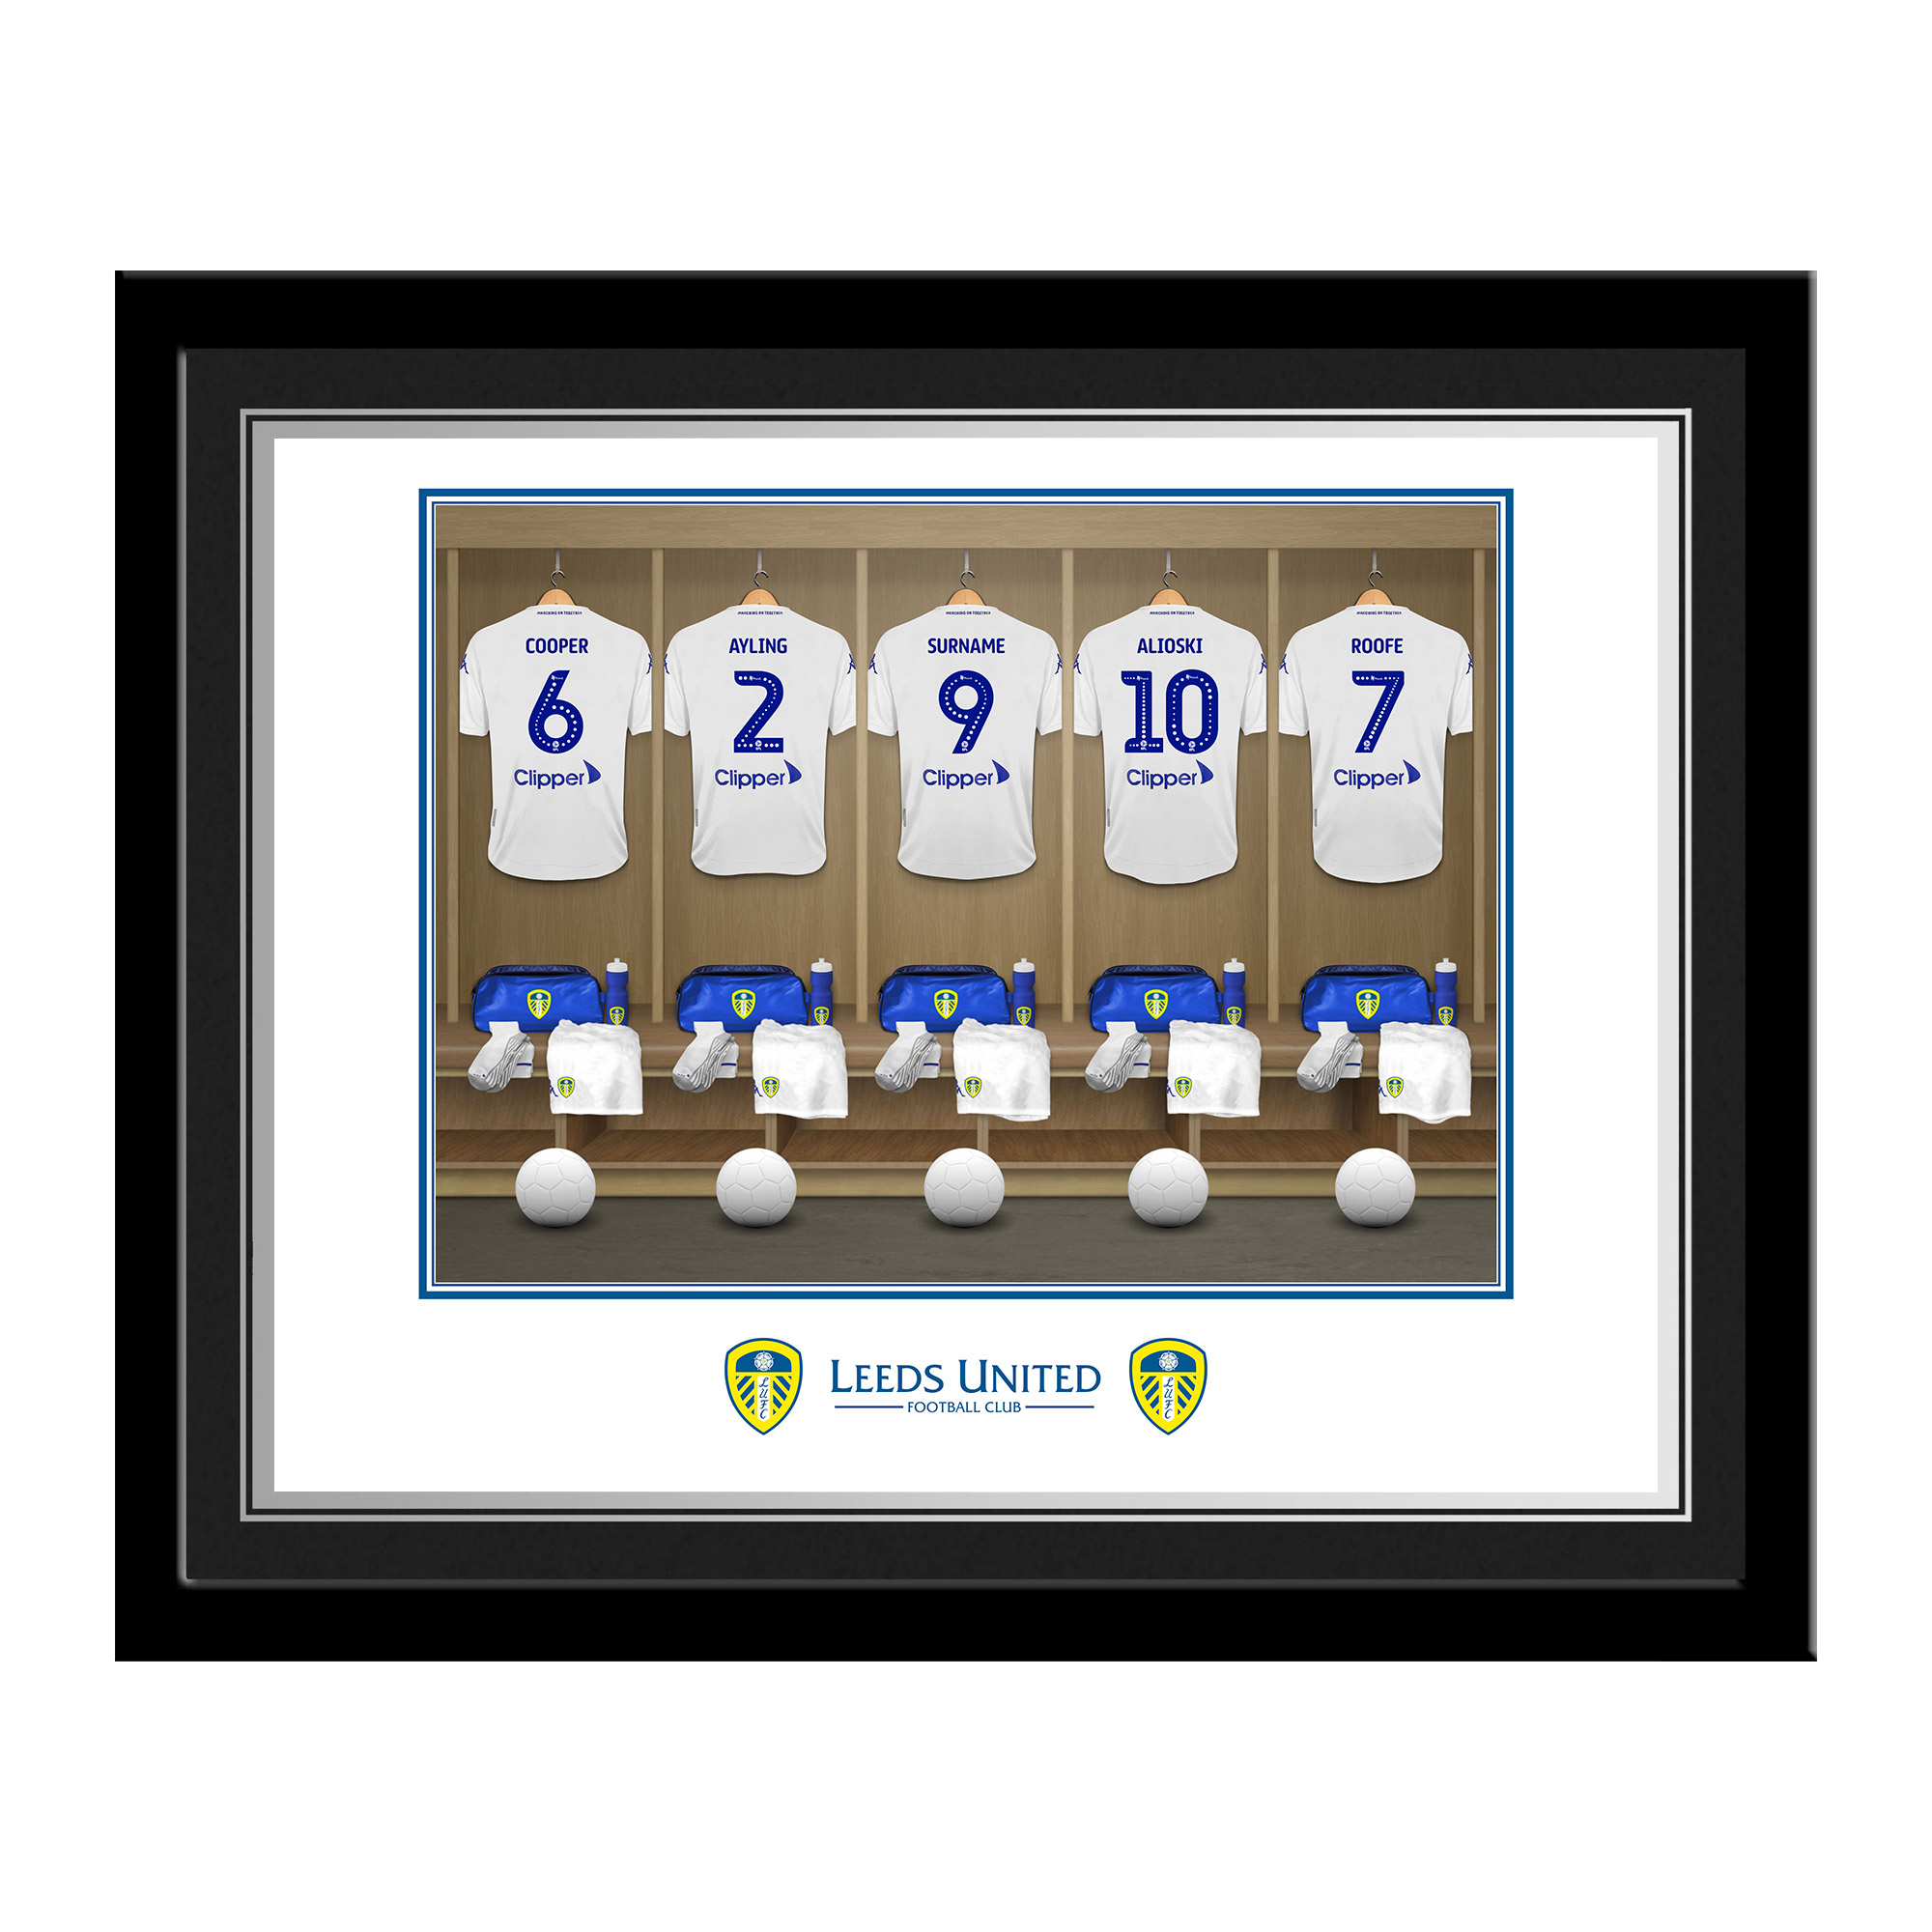 Leeds United FC Dressing Room Photo Framed